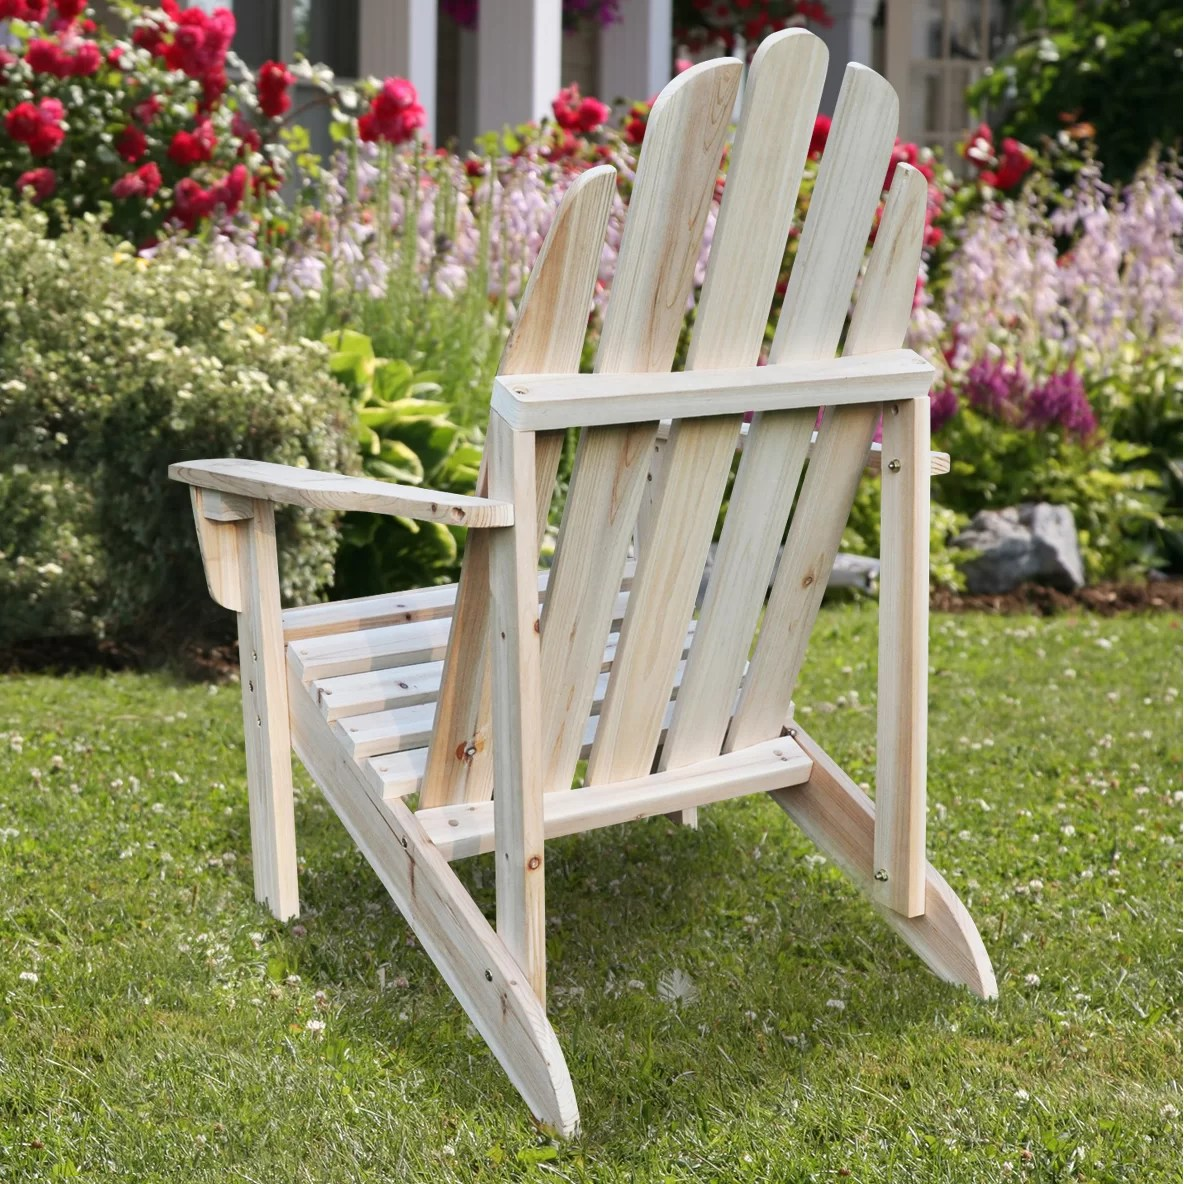 wayfair adirondack chairs tufted upholstered chair breakwater bay pomfret and reviews